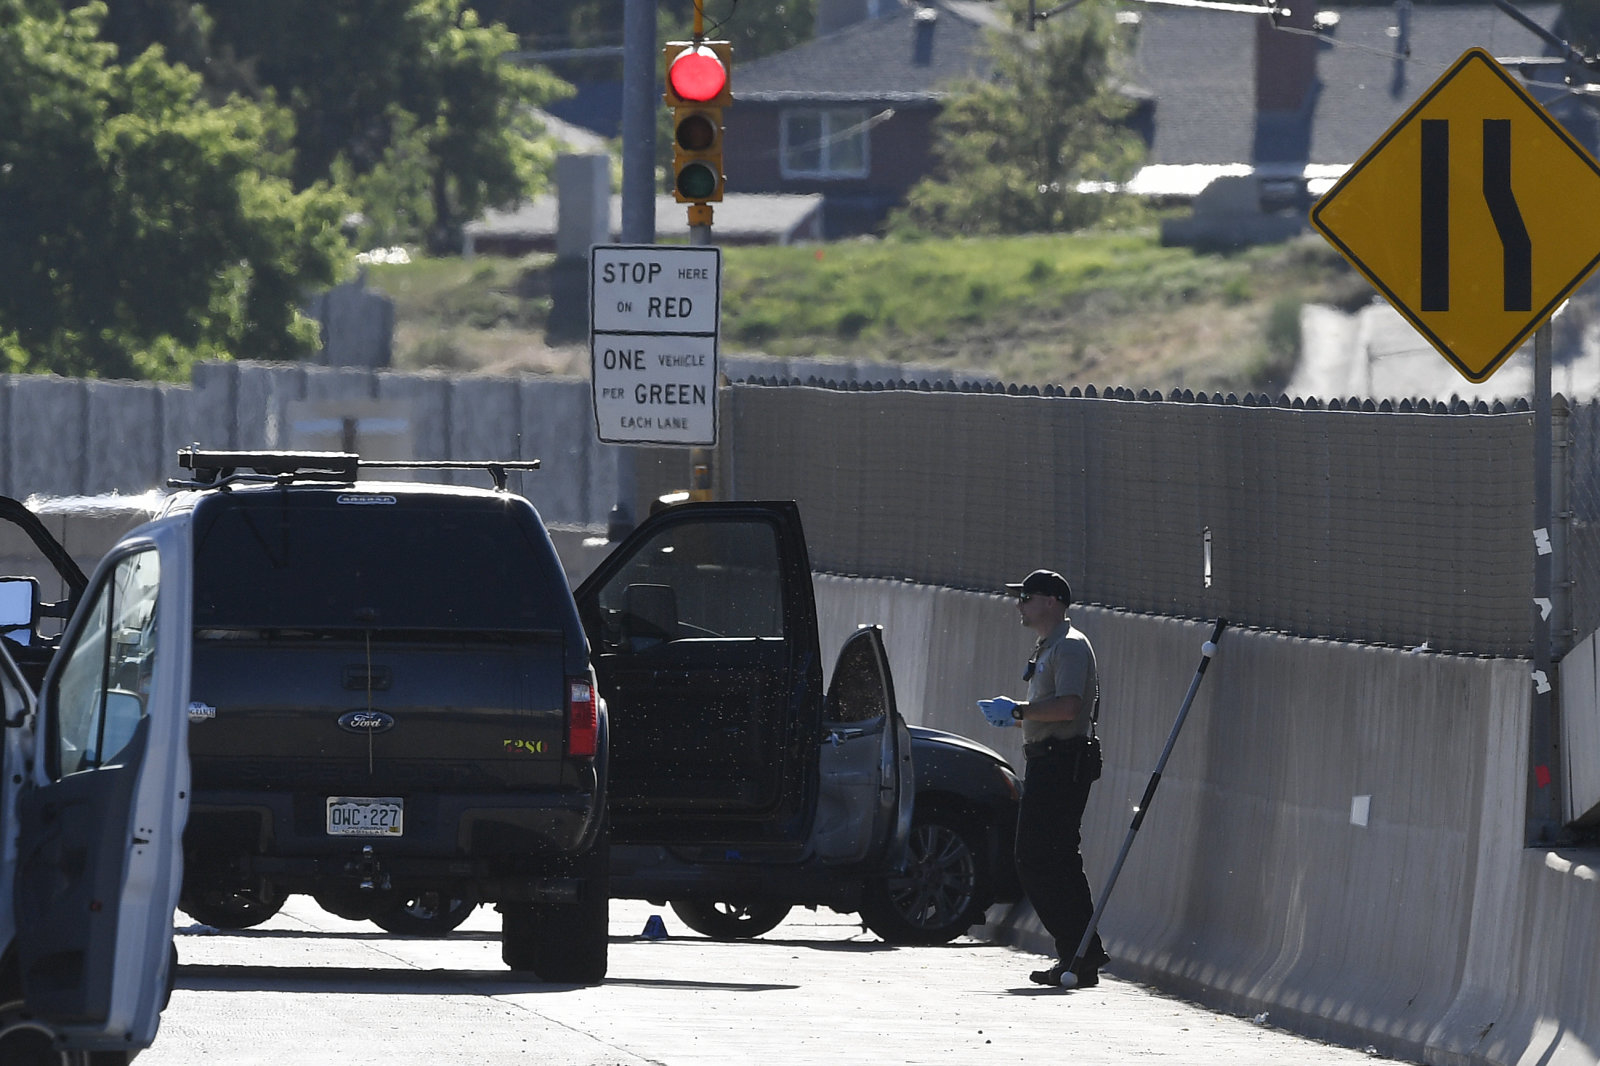 DENVER, CO - JUNE 01: A Denver crime scene investigator on scene of a fatal shooting which an Uber driver (car into the barrier, far right) allegedly shot and killed a passenger early Friday morning on I-25 southbound at University Blvd June 01, 2018. (Photo by Andy Cross/The Denver Post via Getty Images)